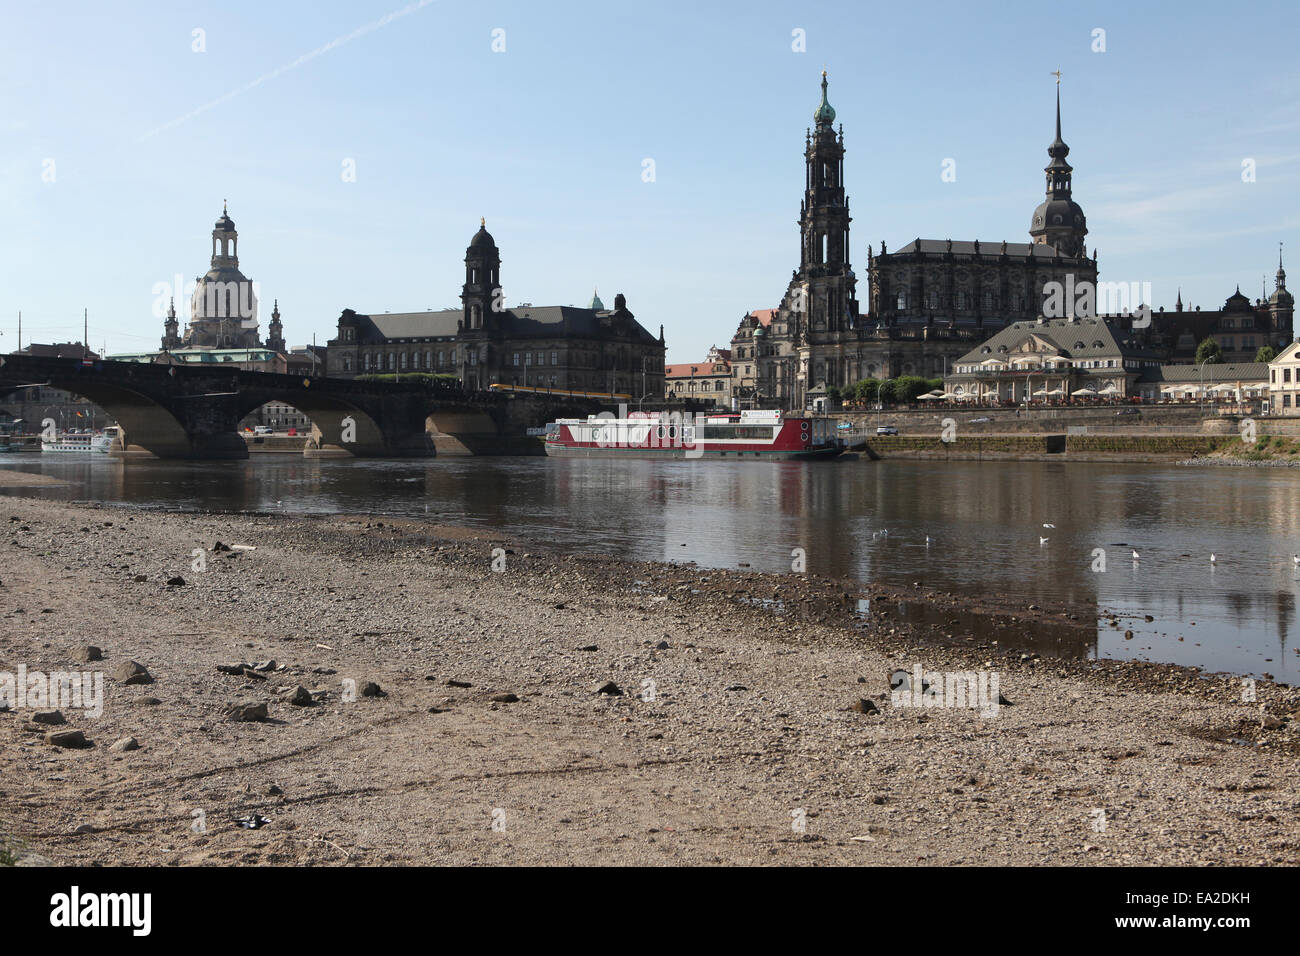 The Frauenkirche (L), the Dresden Cathedral (C) and the Dresden Castle (R) and the Elbe River in Dresden, Saxony, - Stock Image